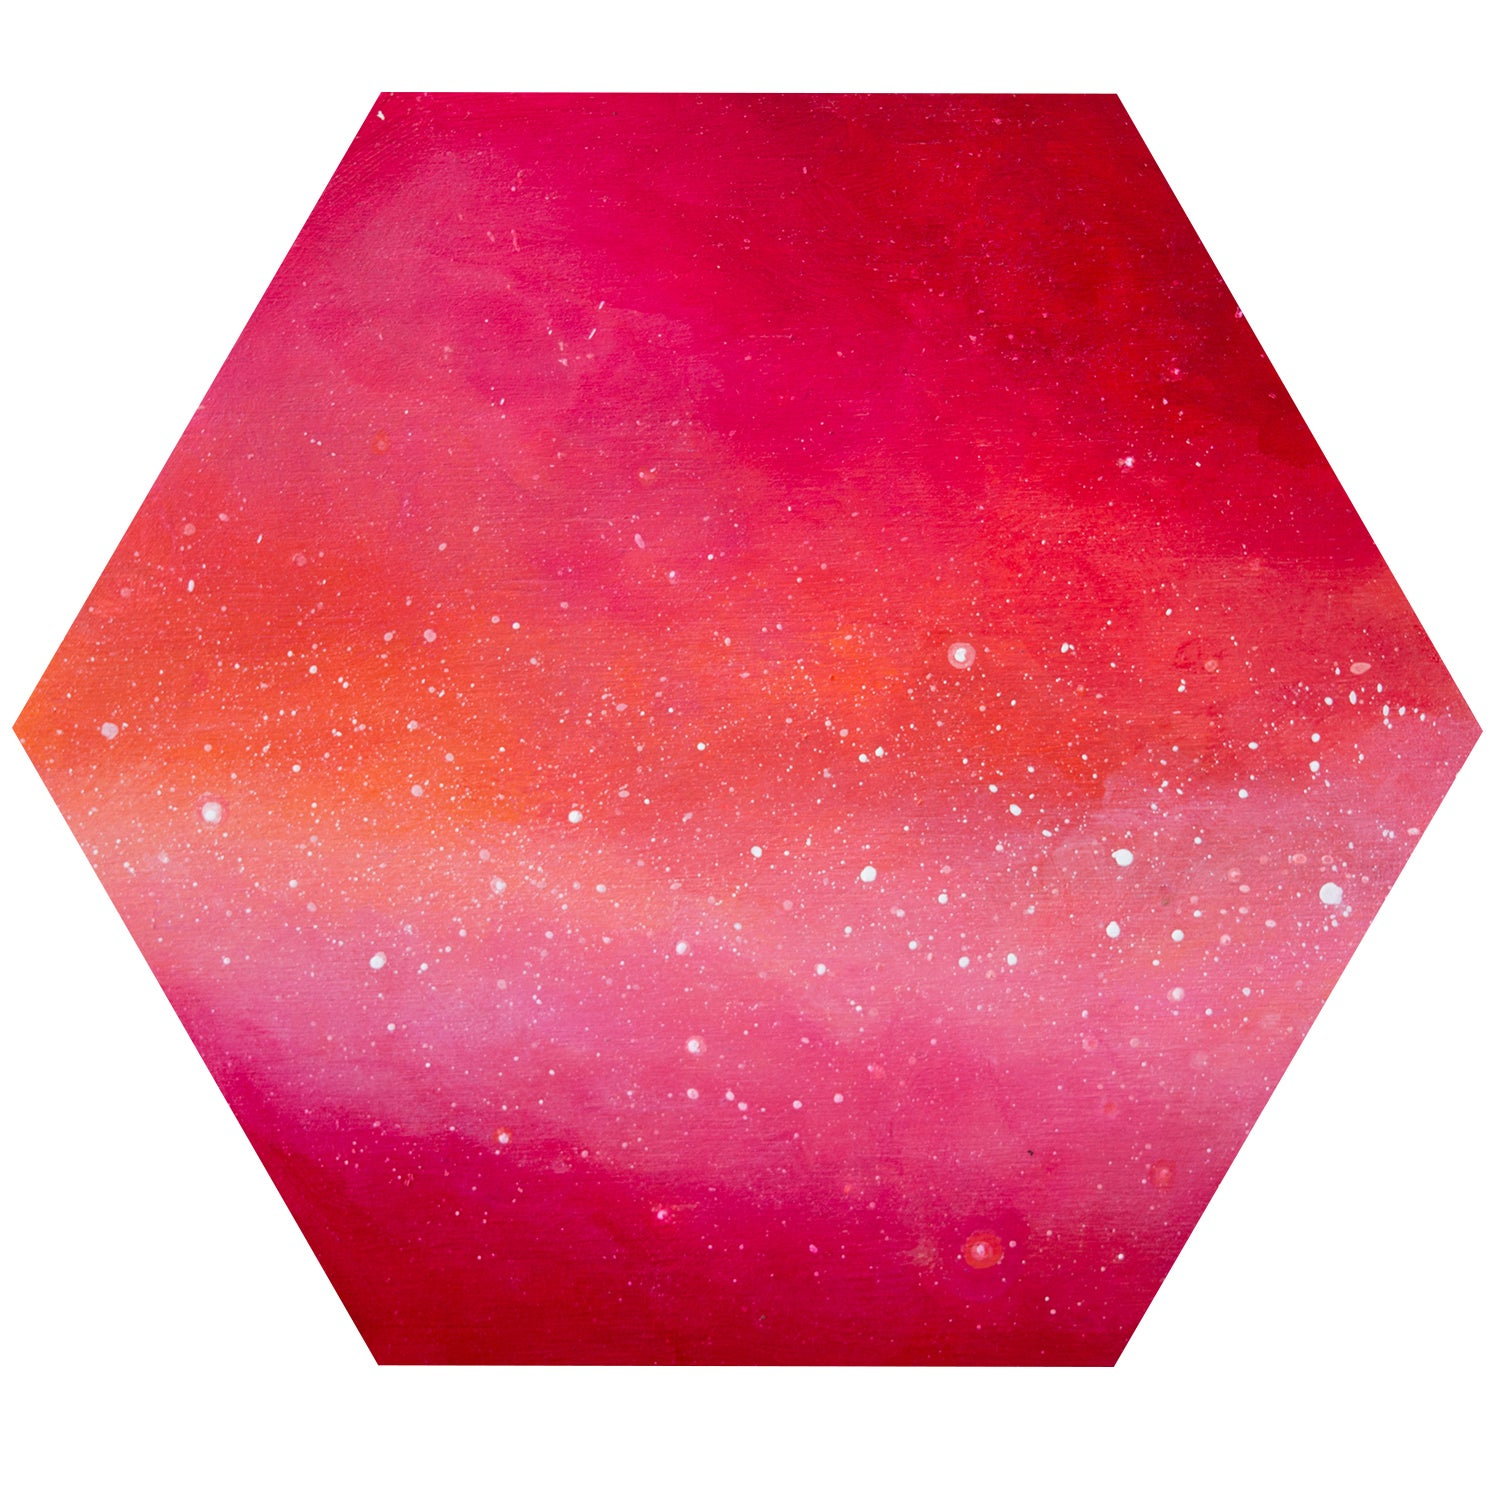 Image of red abstract hexagon painting